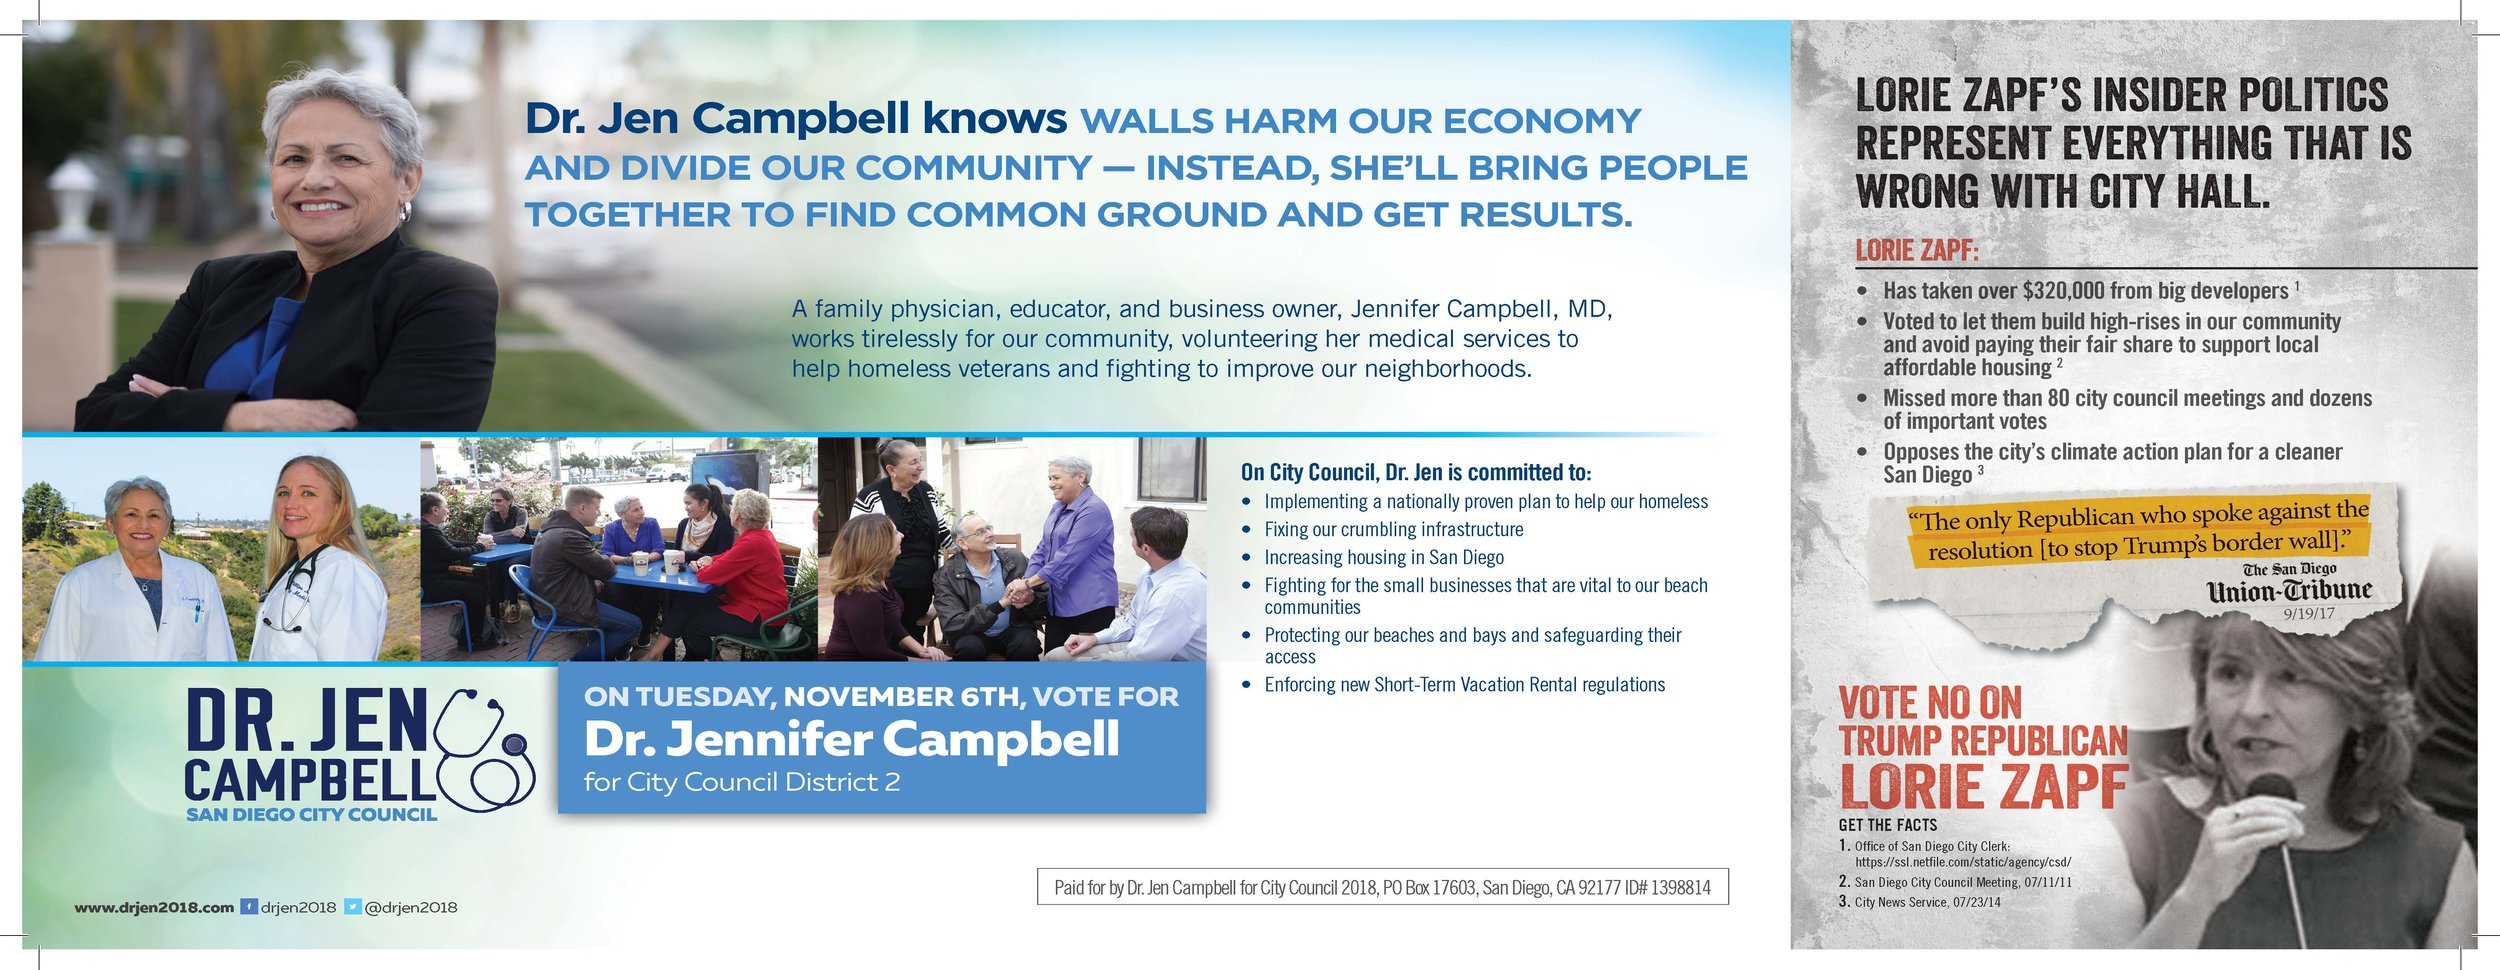 Campbell - Out of Place CC NONDEM_Page_2.jpg